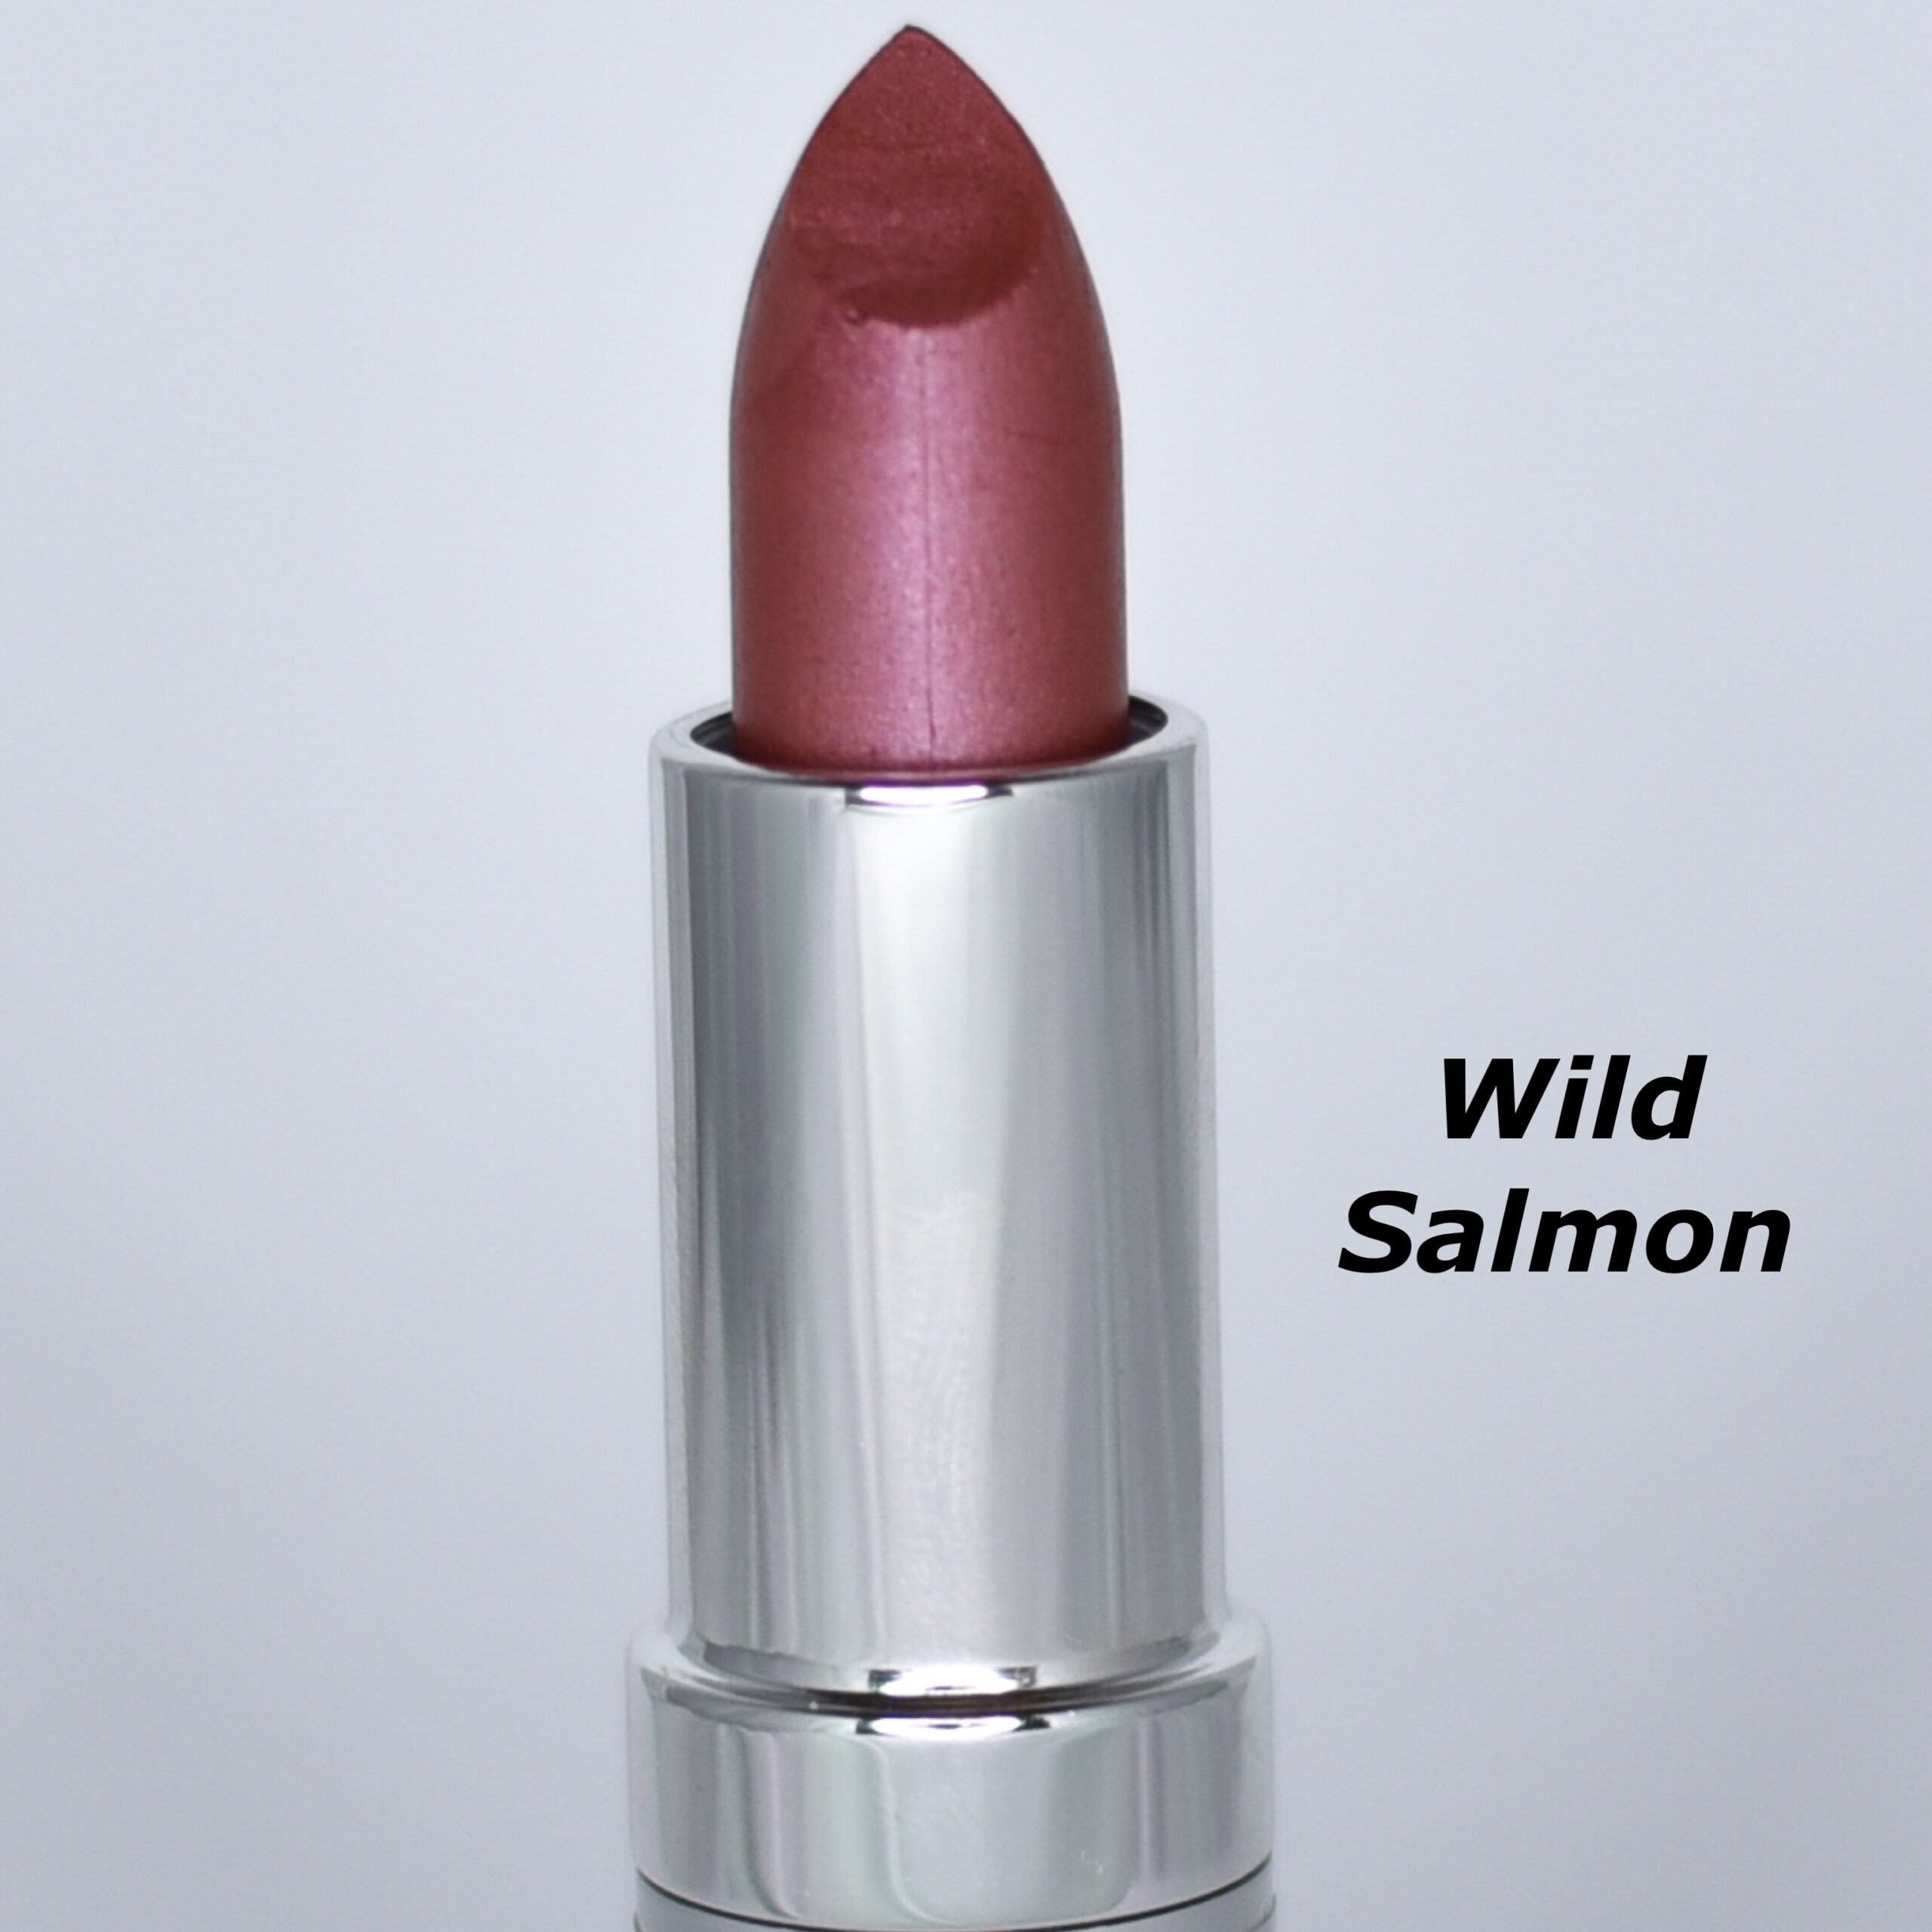 Wild Salmon scaled